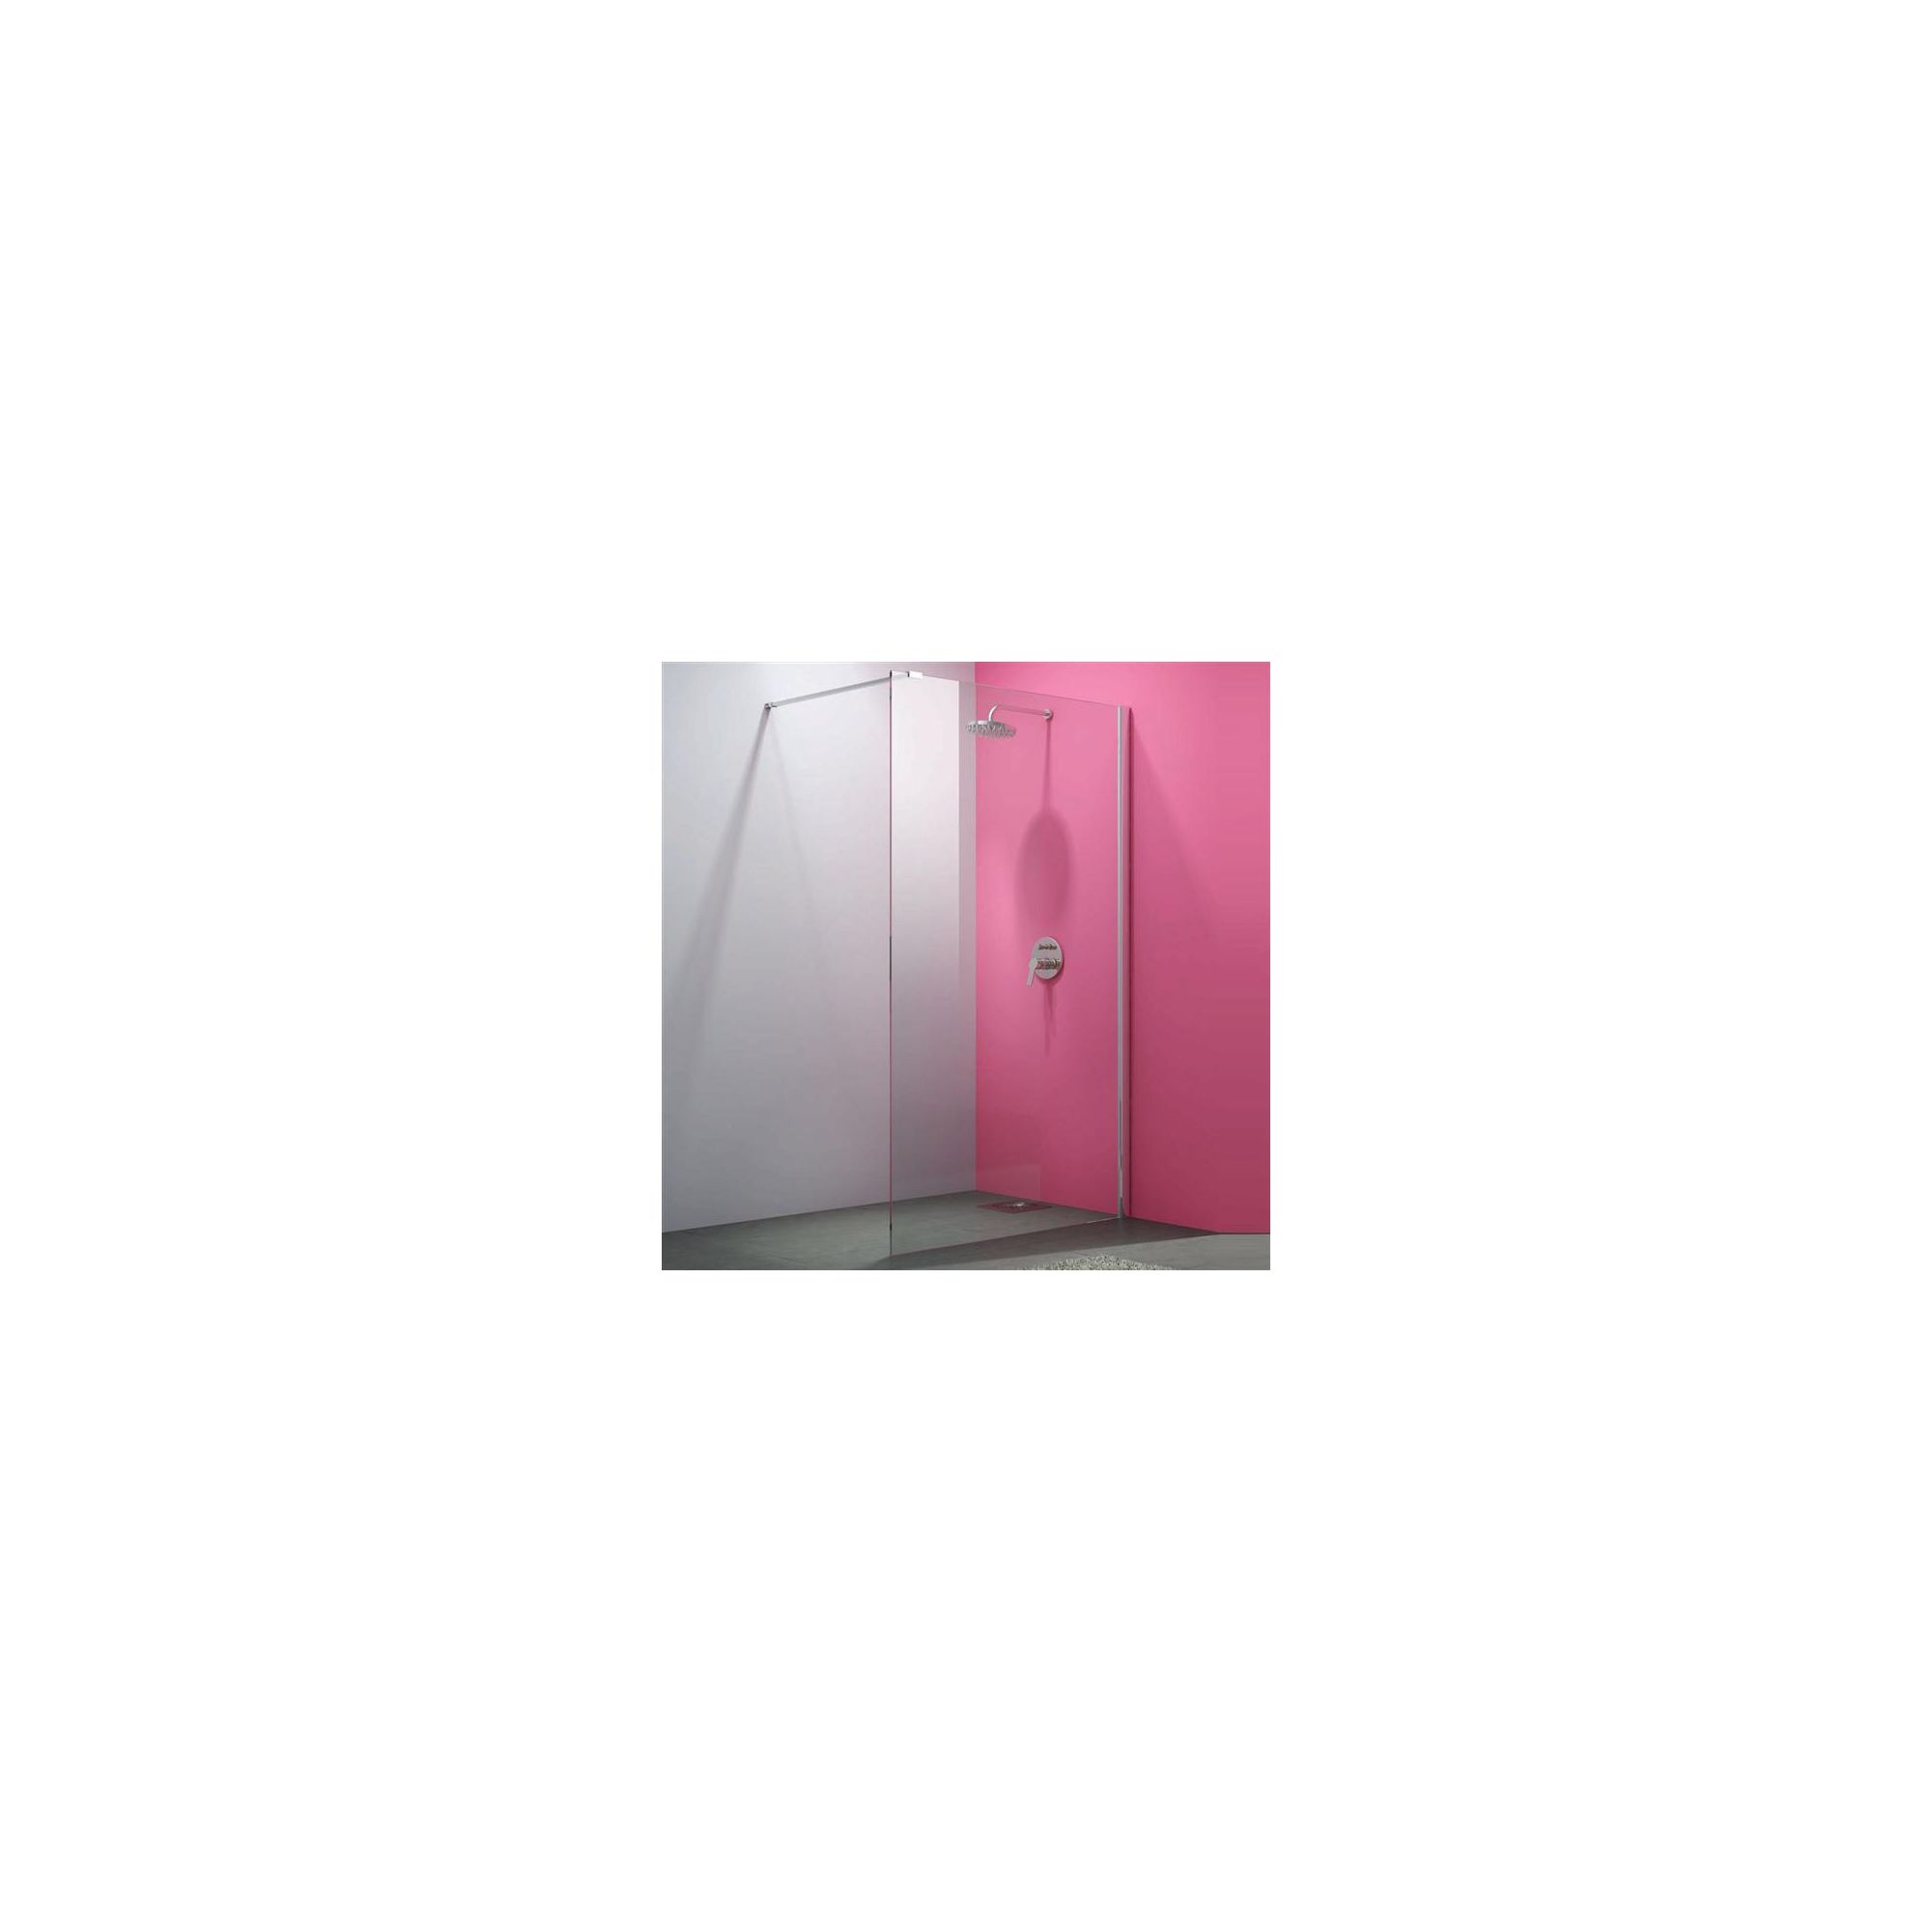 Merlyn Vivid Eight Wet Room Shower Enclosure, 900mm x 900mm, Low Profile Tray, 8mm Glass at Tesco Direct